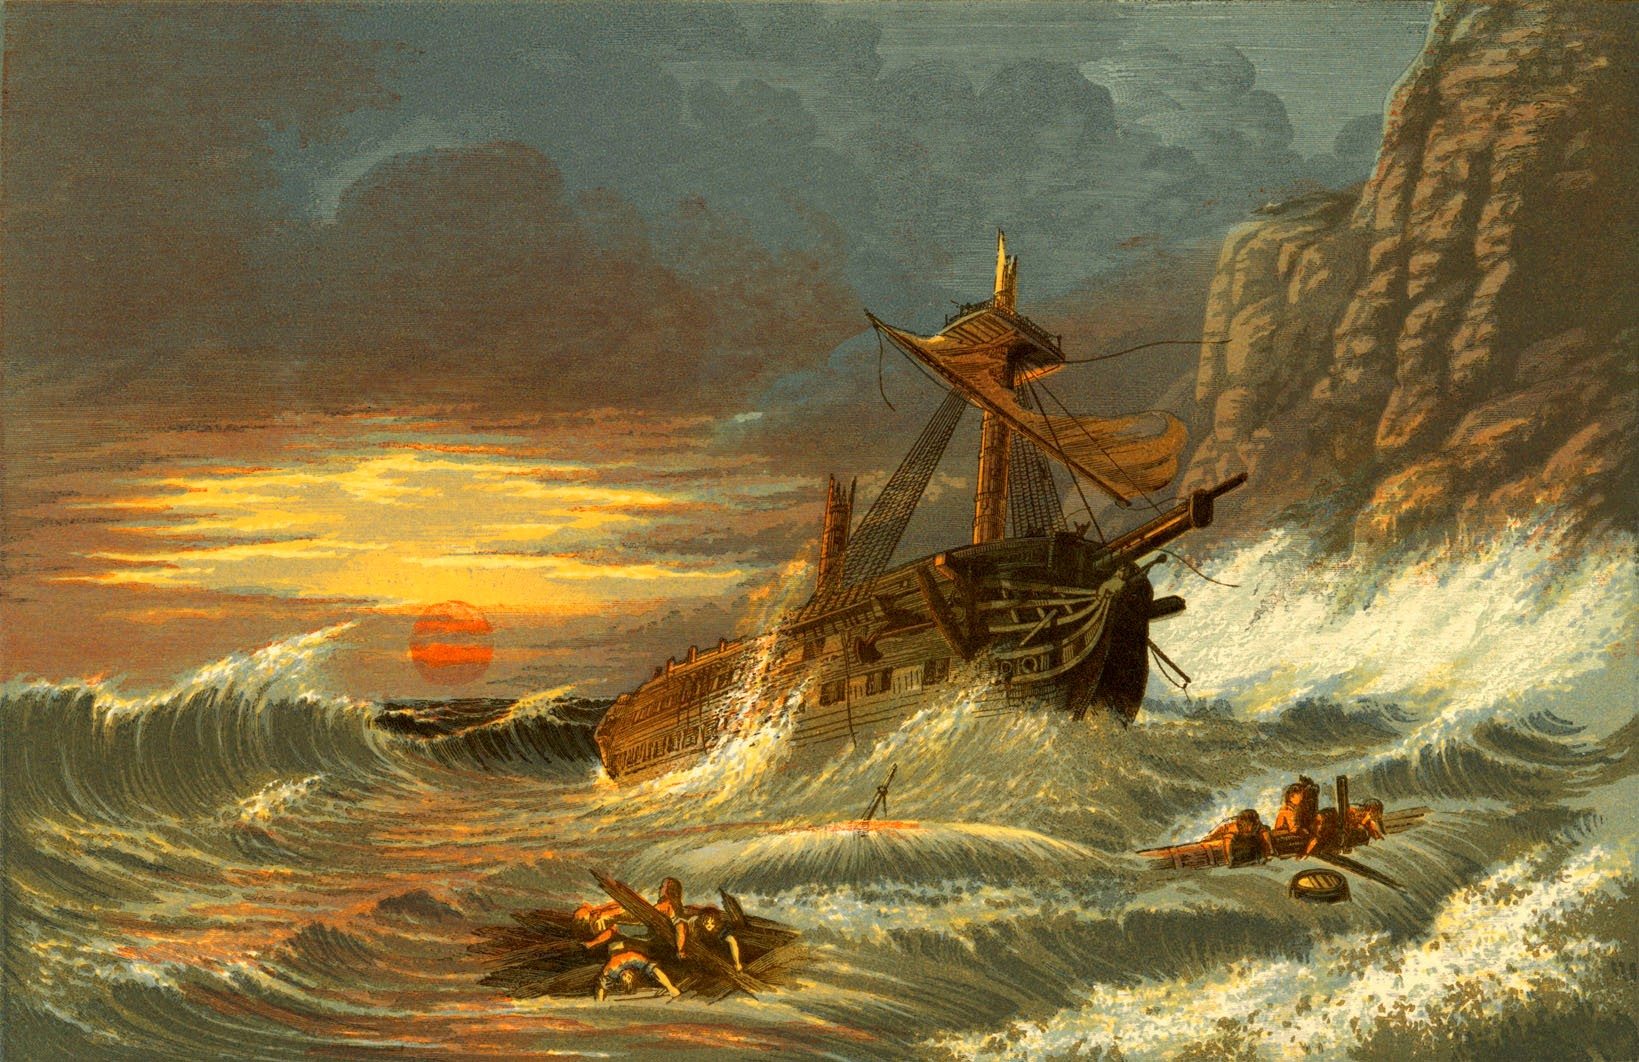 A painting of a shipwreck